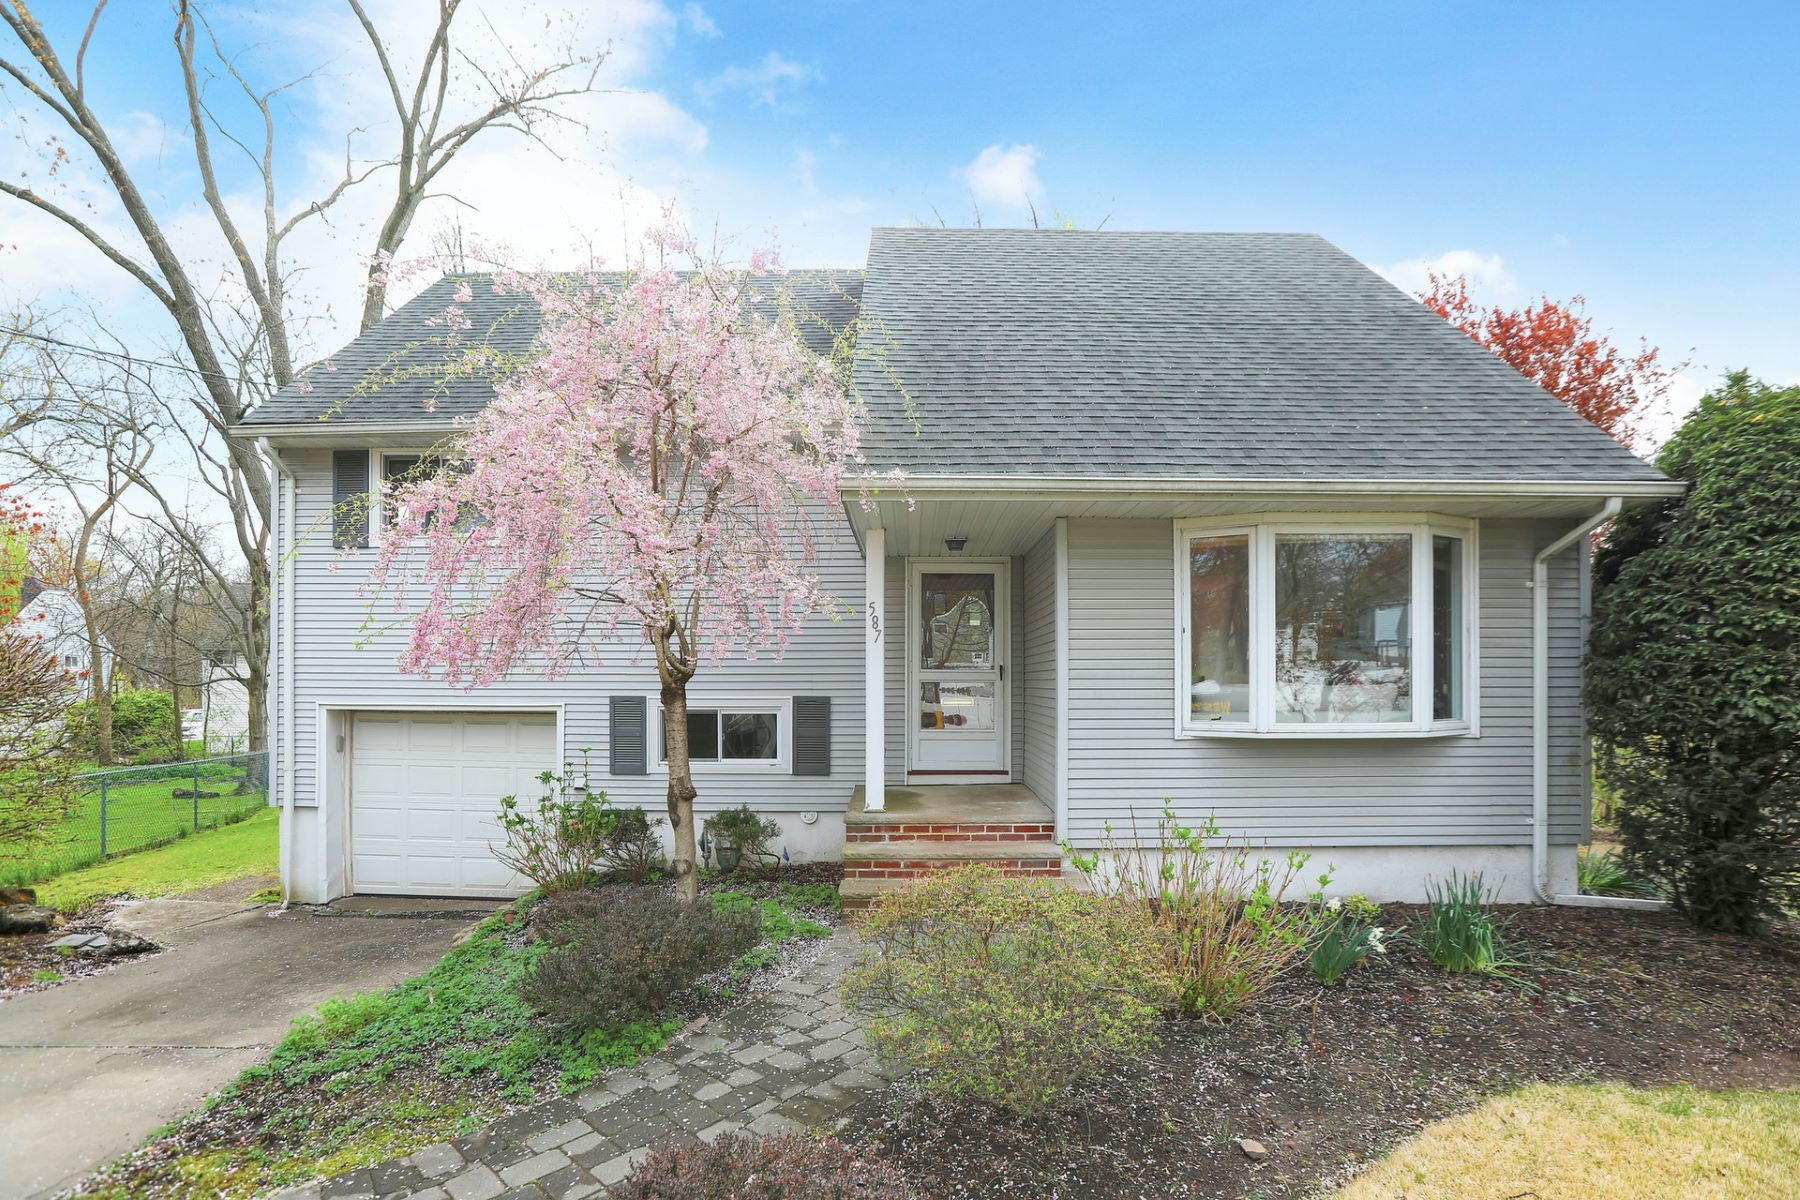 Single Family Homes for Sale at Welcome Home! 587 Gail Ct Teaneck, New Jersey 07666 United States